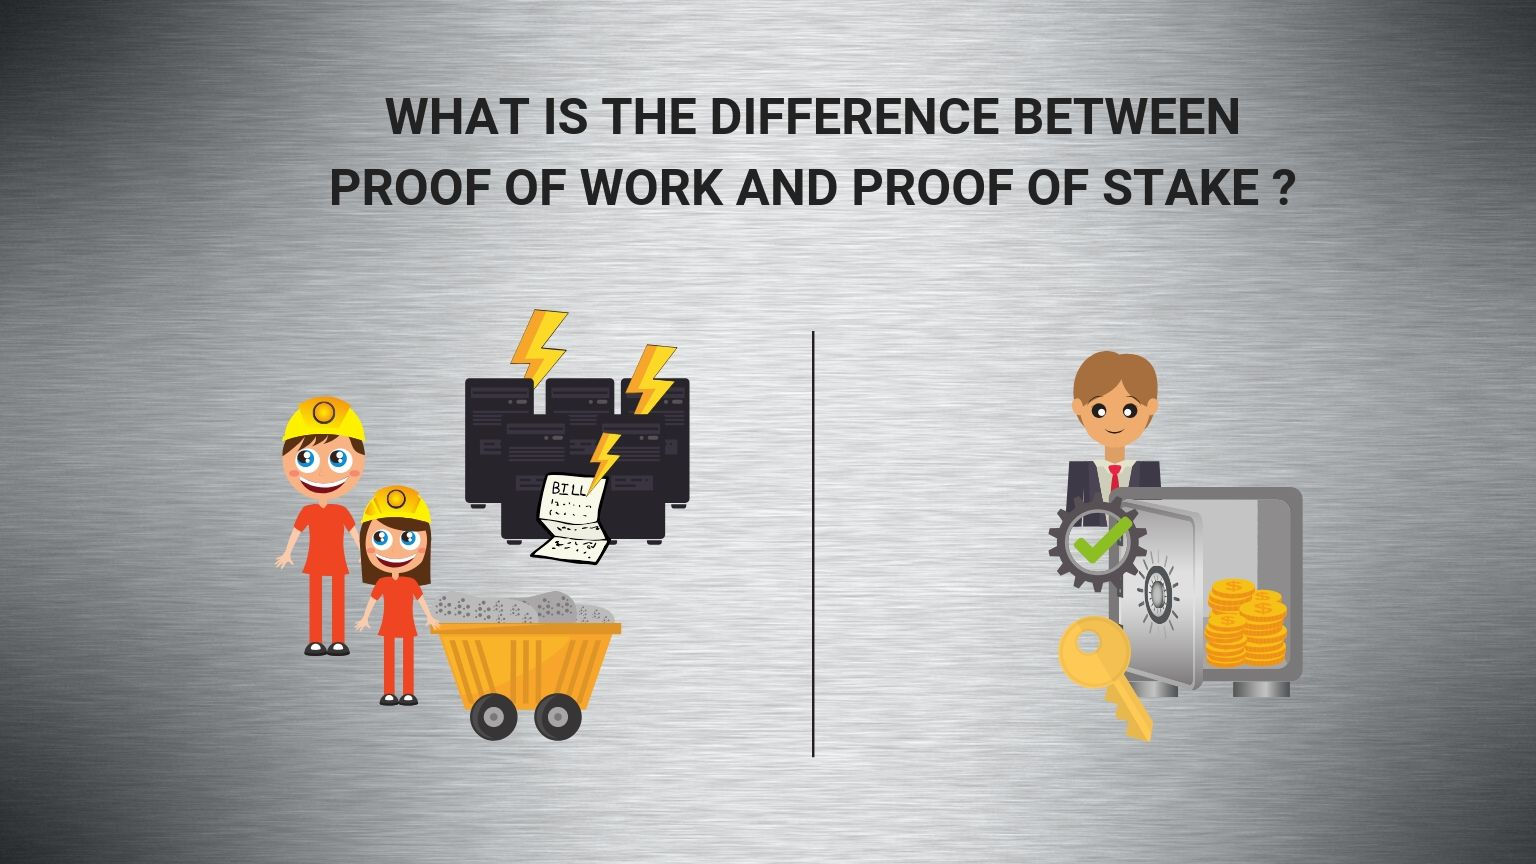 Difference between Proof of Work and Proof of Stake